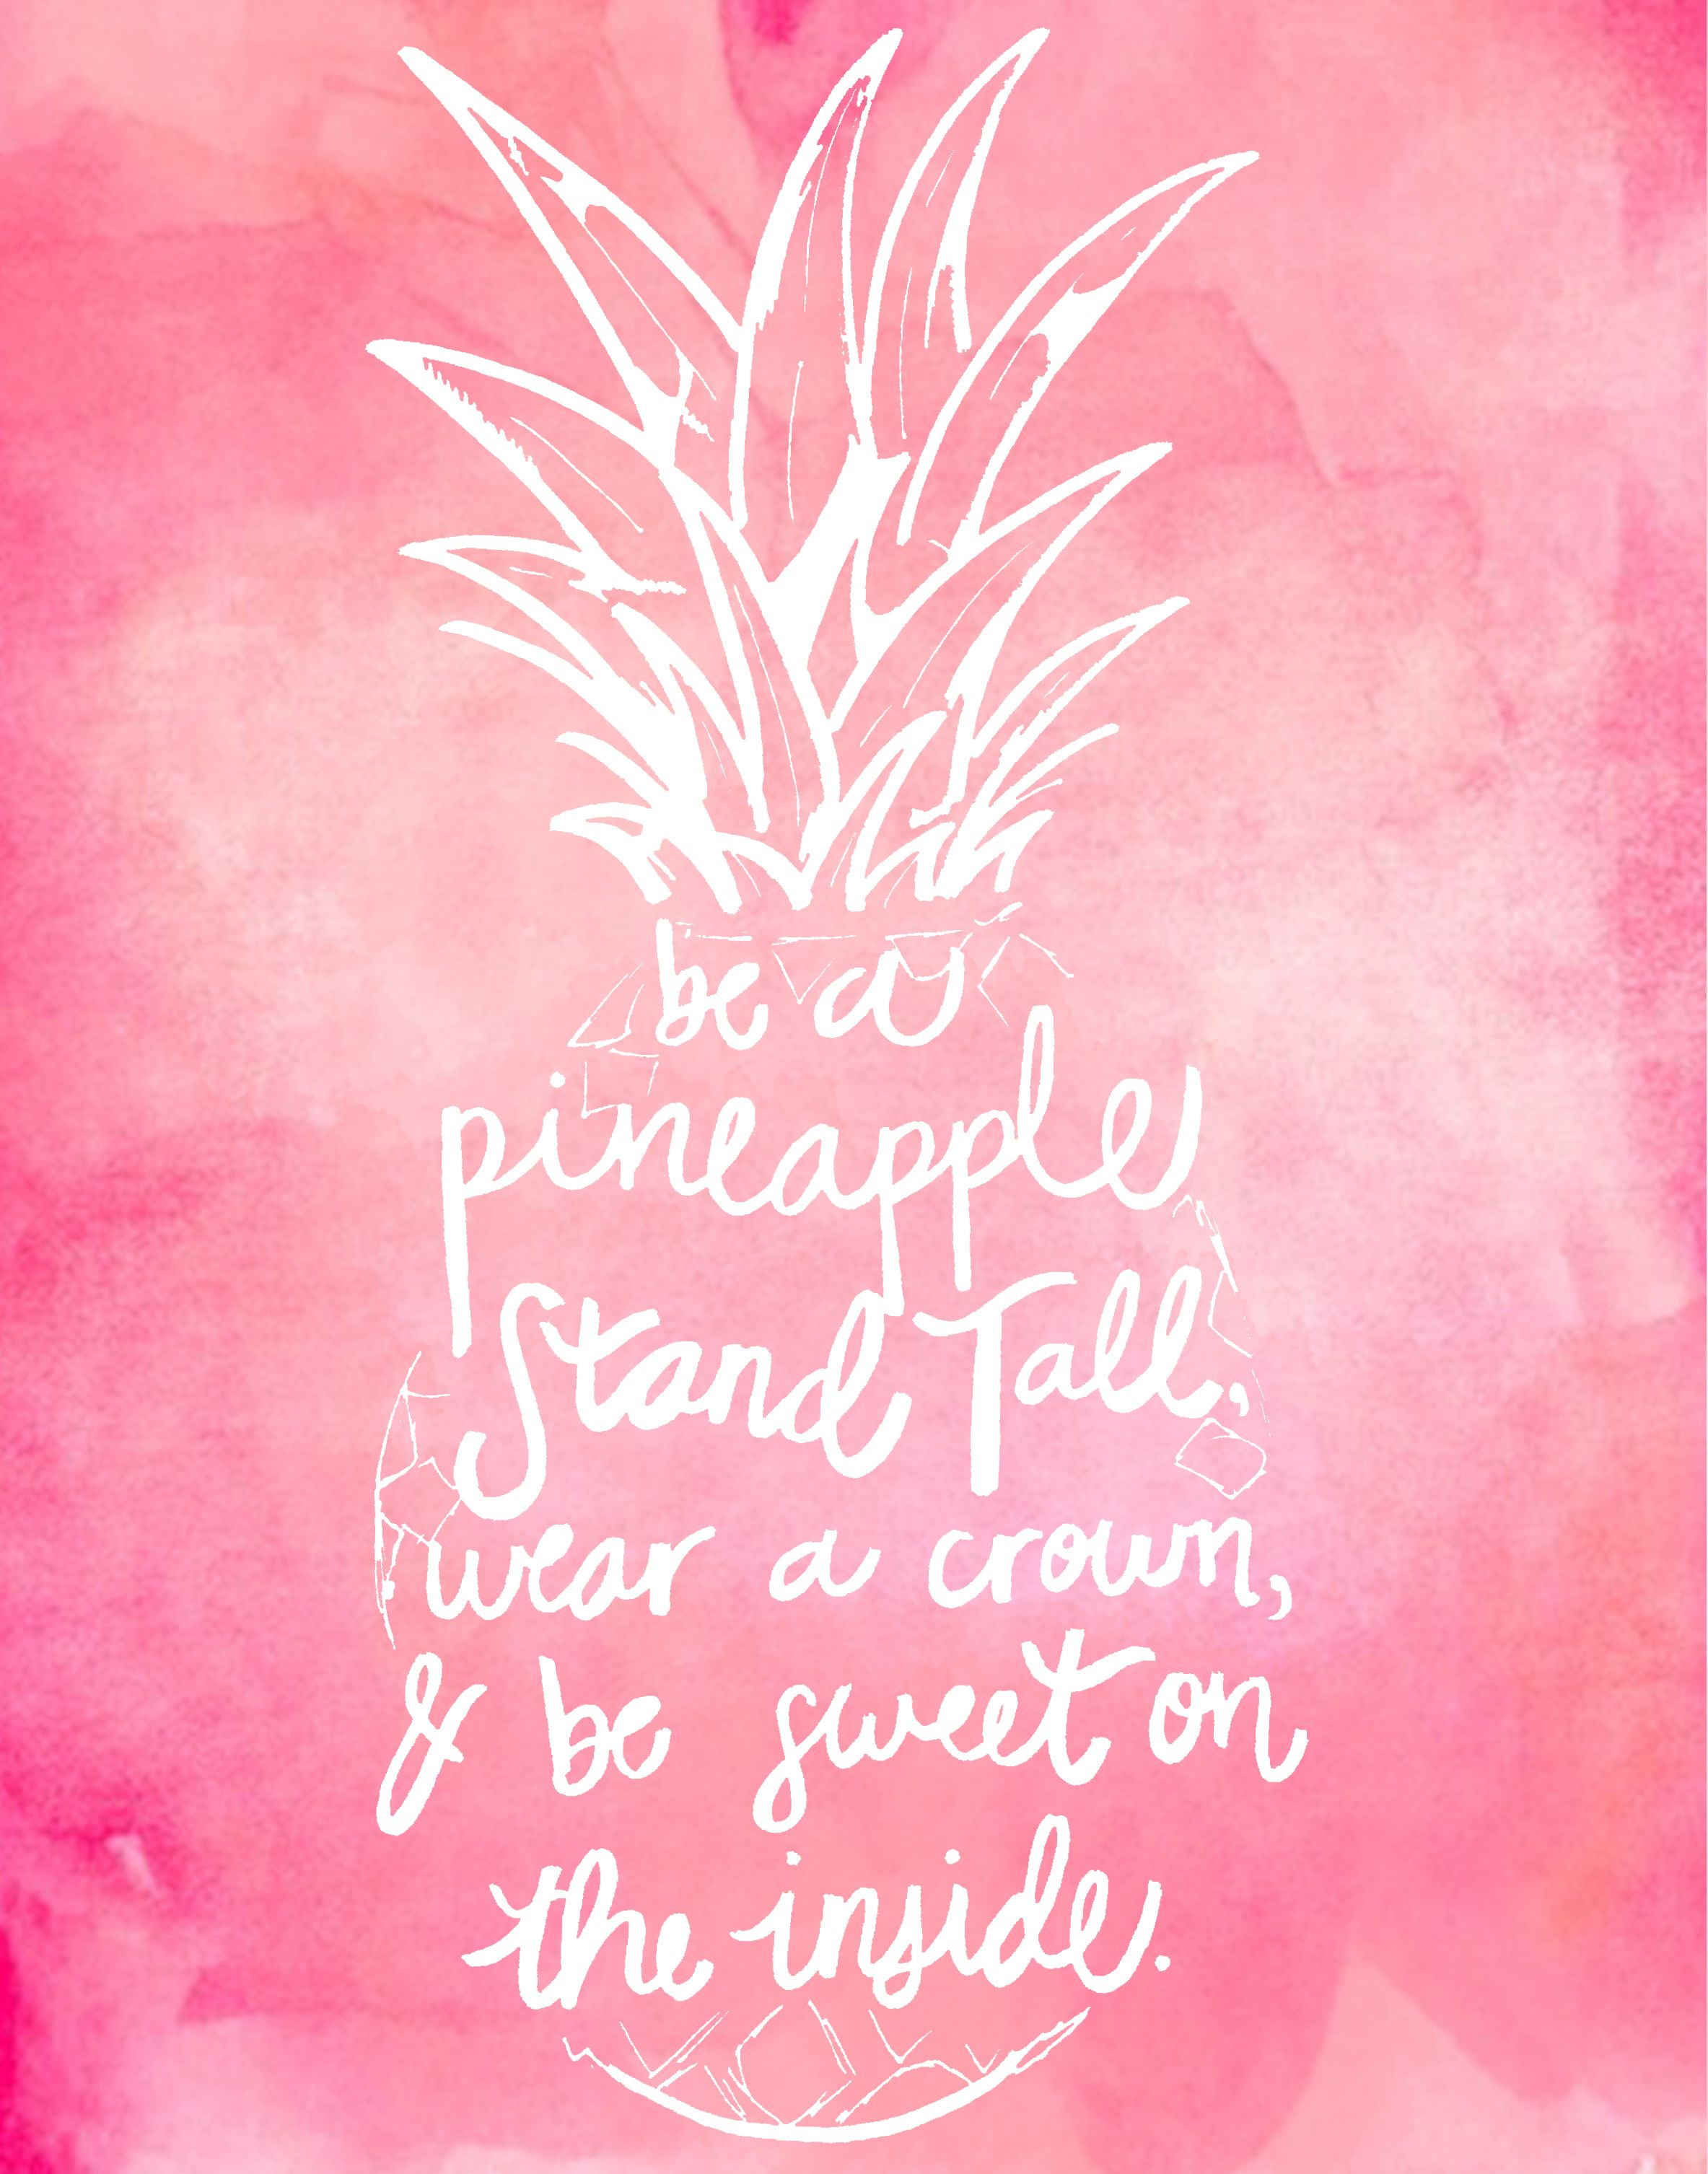 979c5b4d1db8 Always be a pineapple. #altardstate #standoutforgood   Words to ...